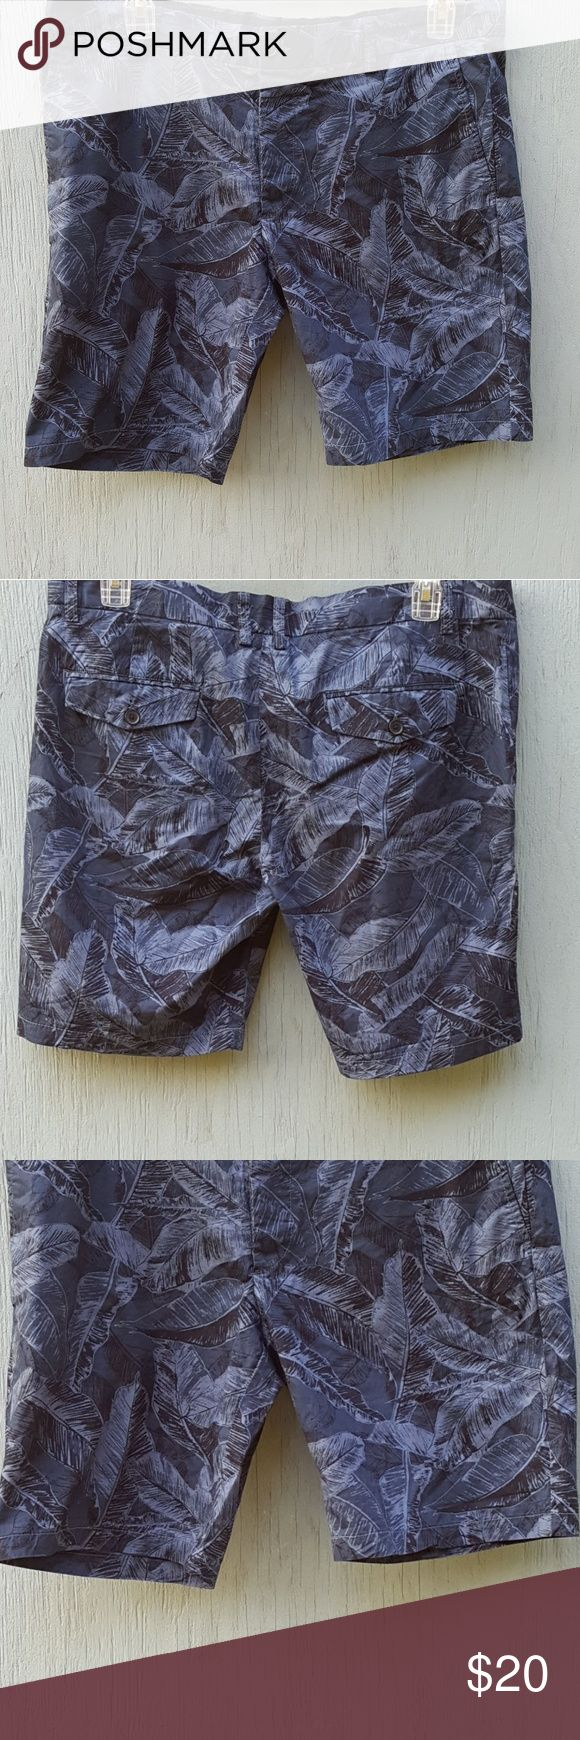 H&M shorts H&M guys shorts. In size 38R. Length of shorts from waist to hem measures approximately 20 in. Inseam of shorts measures approximately 10 in. H&M Shorts